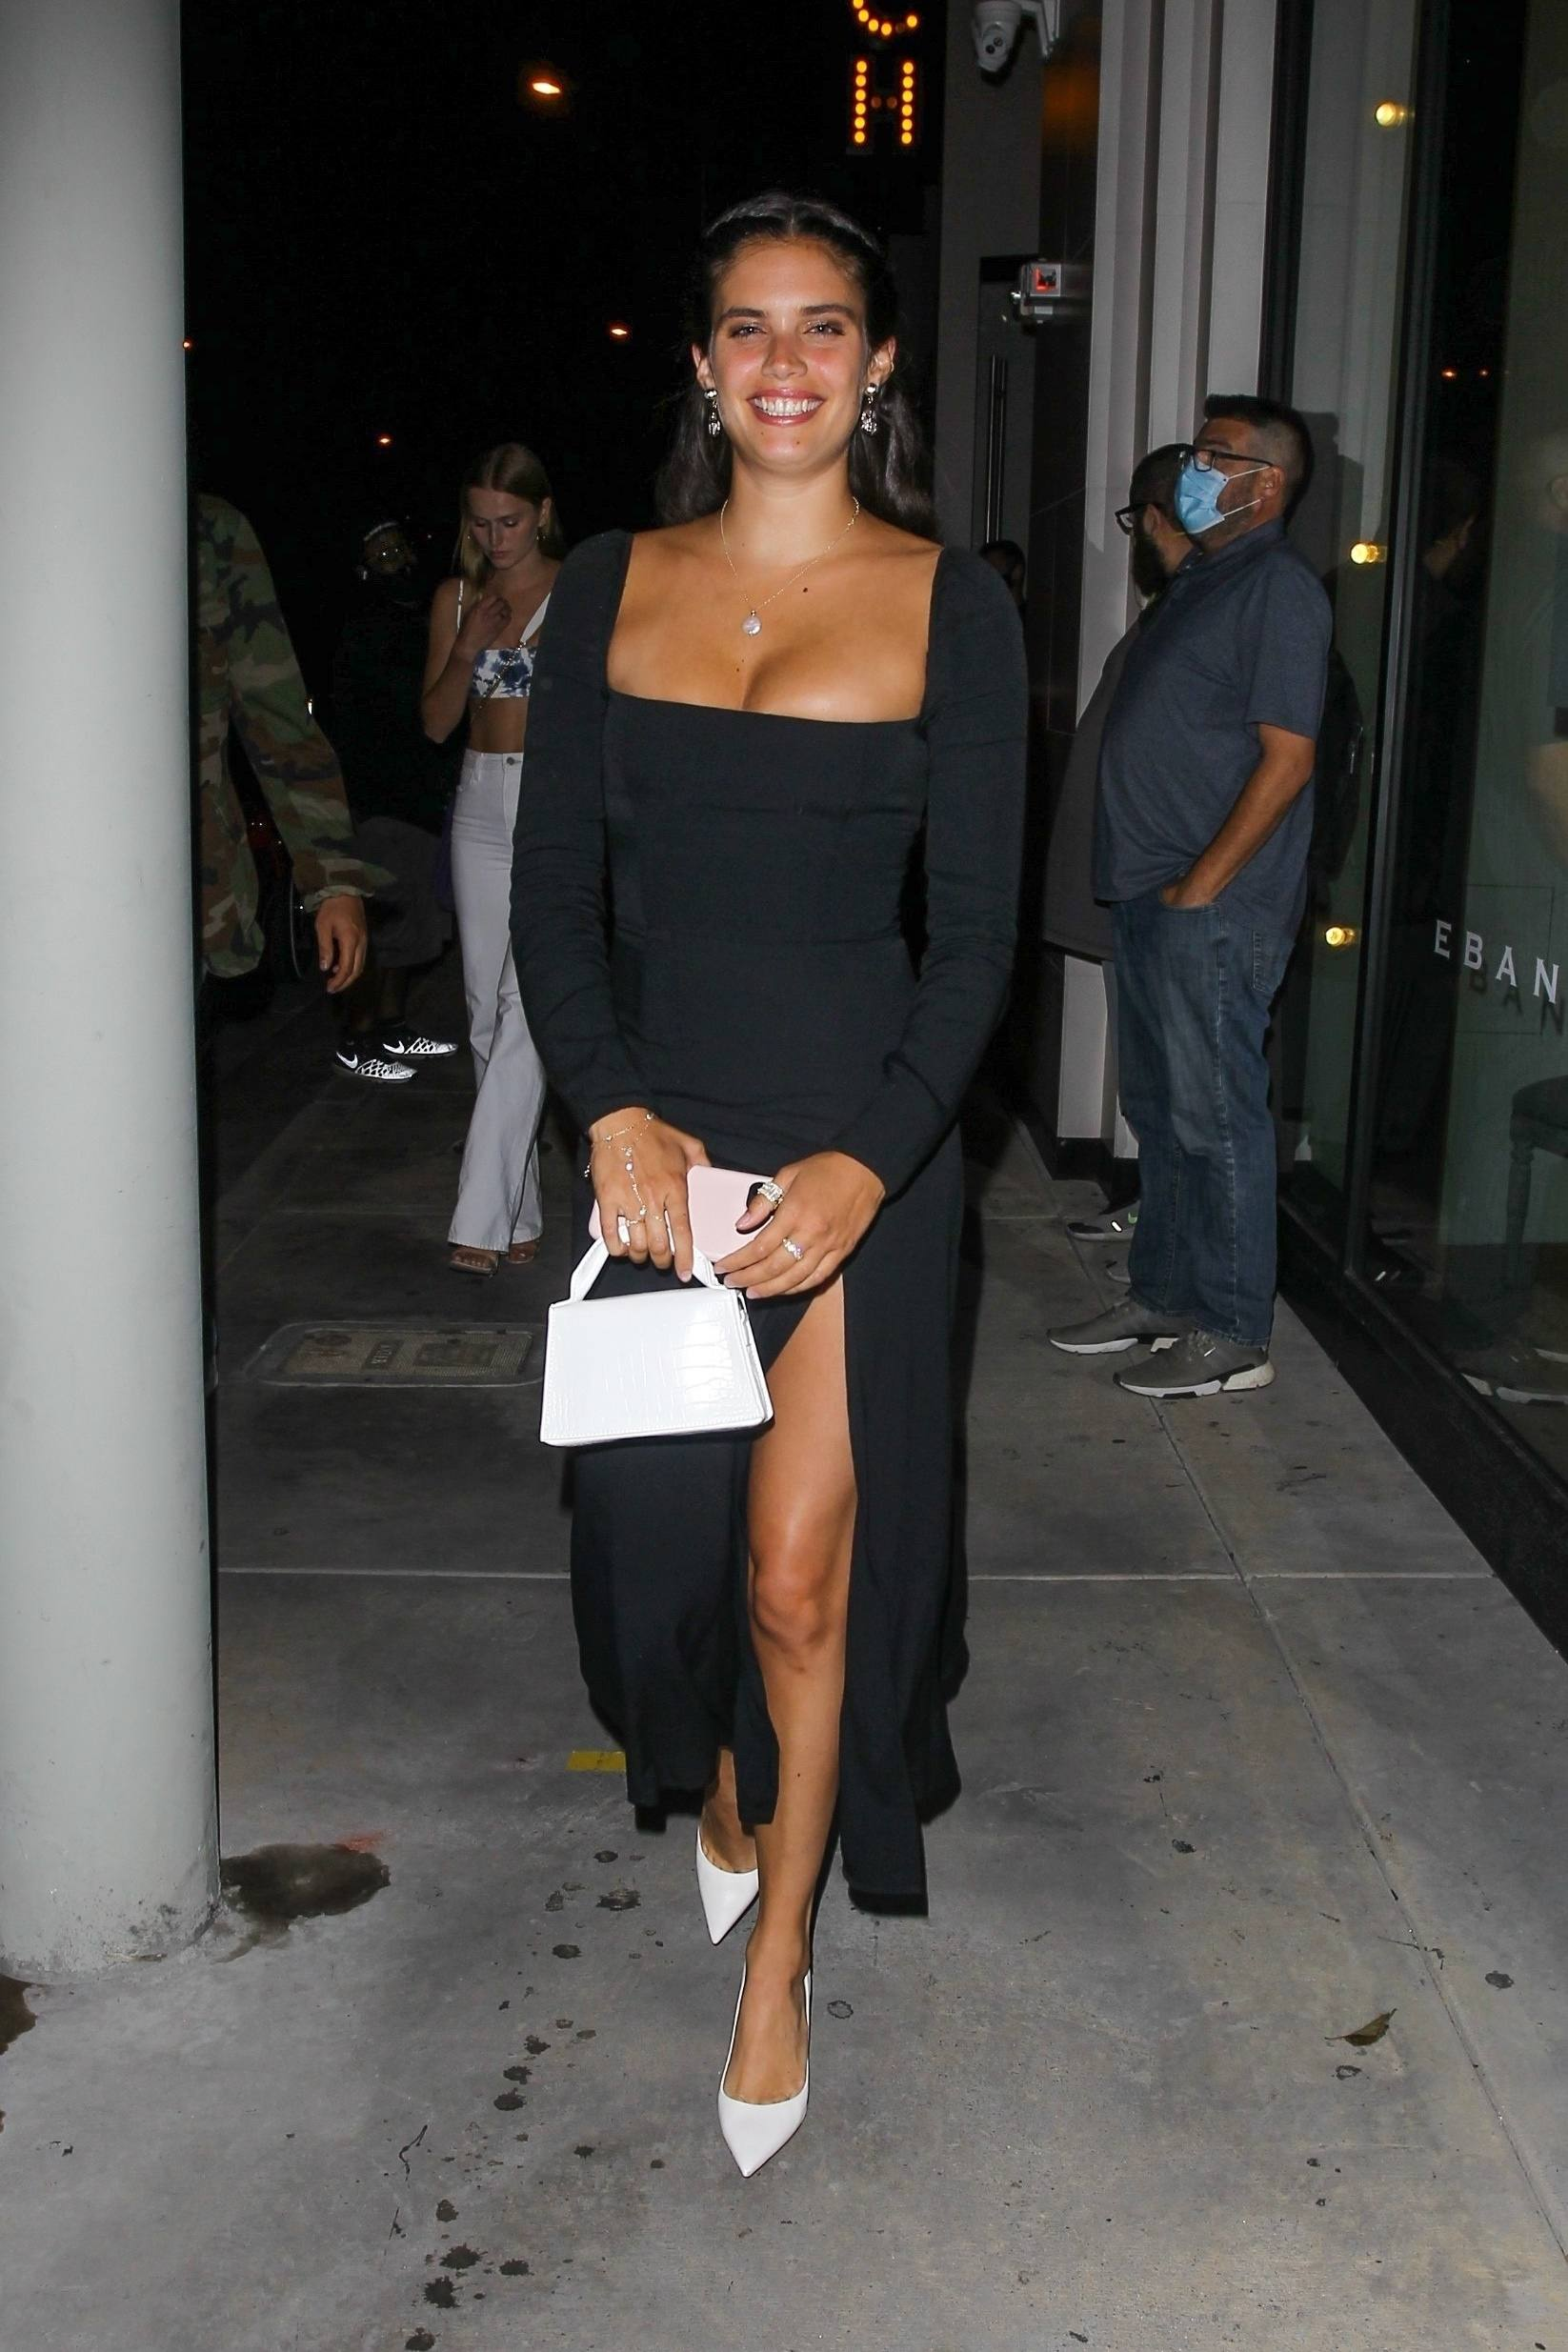 Sara Sampaio – Beautiful In Sexy Black Dress At Catch Restaurant In West Hollywood 0003